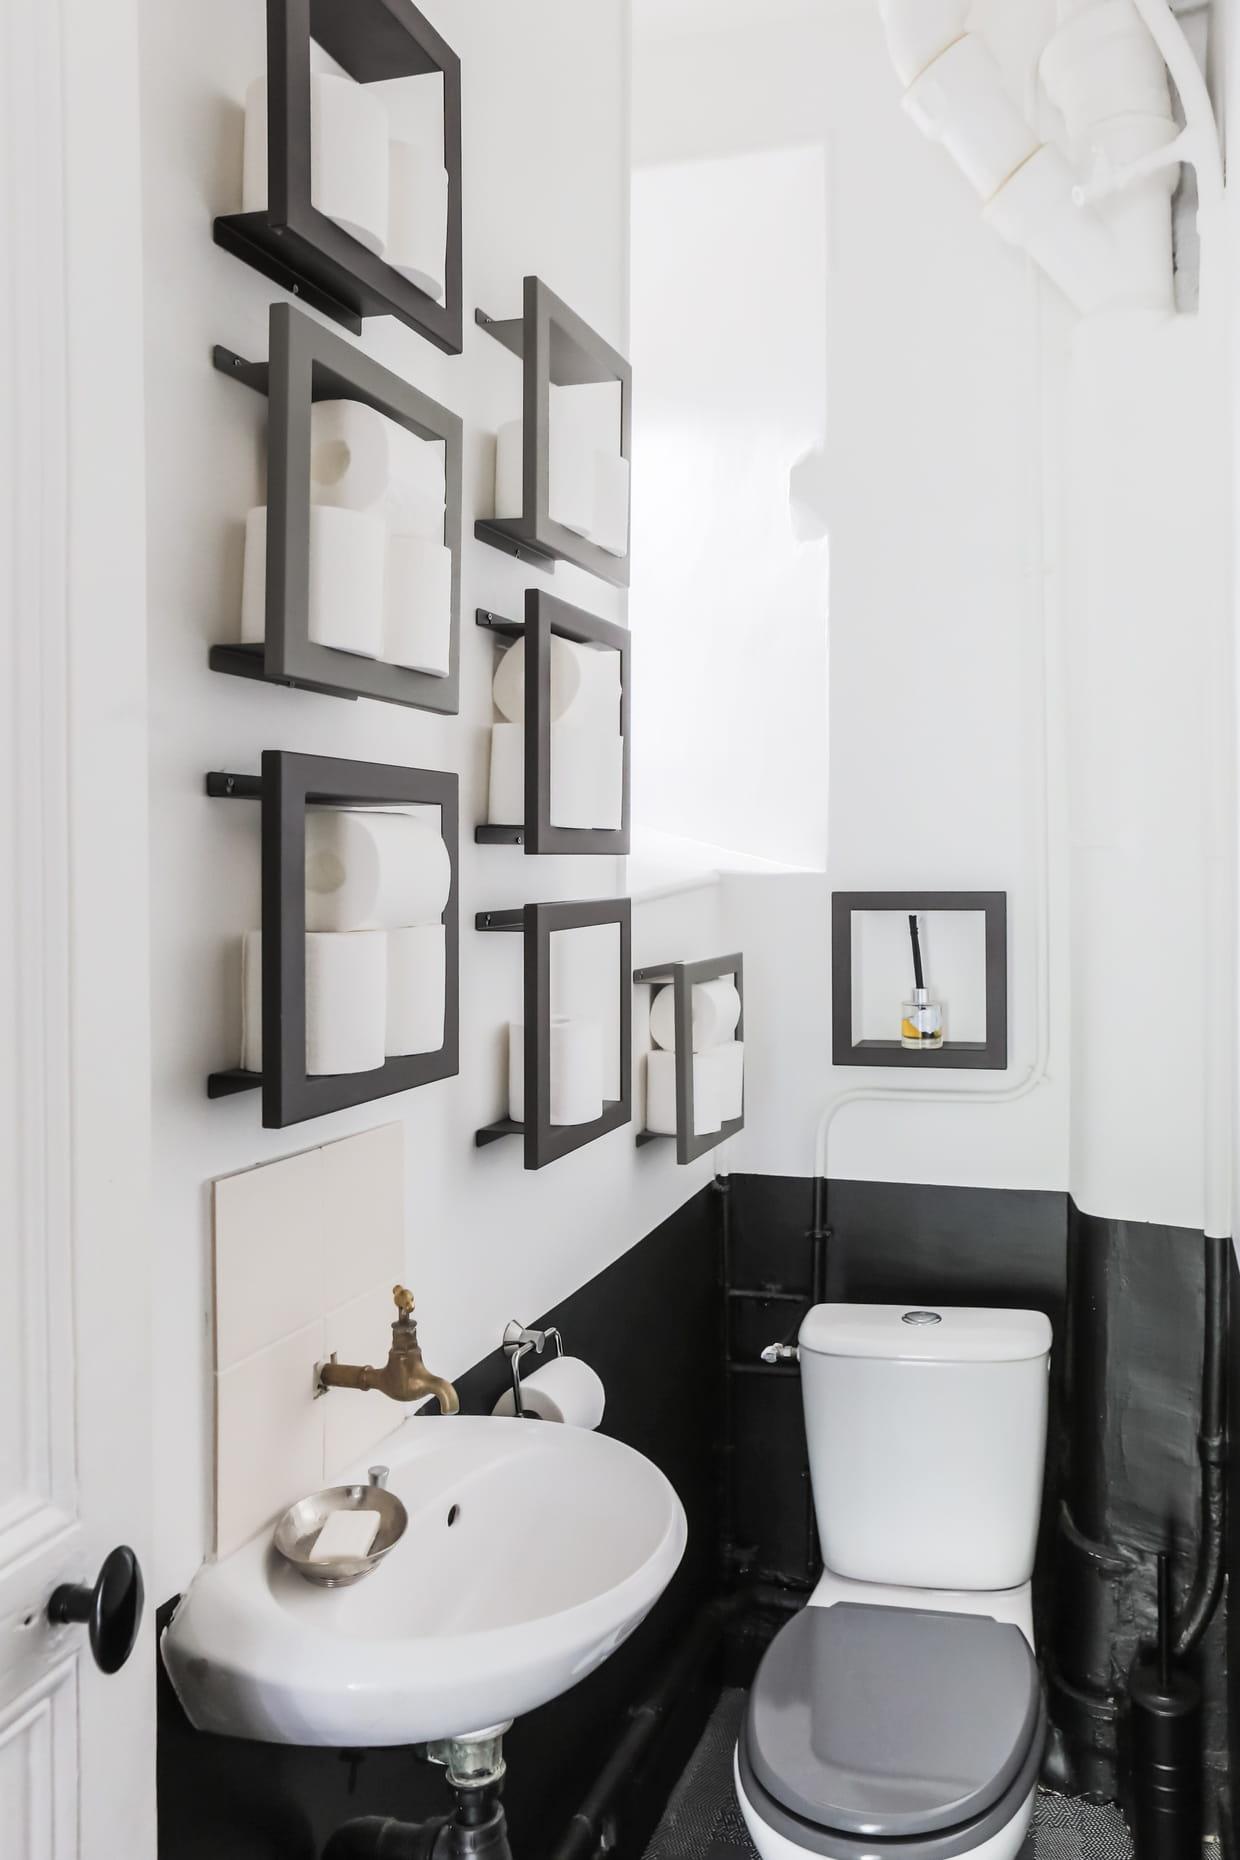 toilettes bicolore. Black Bedroom Furniture Sets. Home Design Ideas